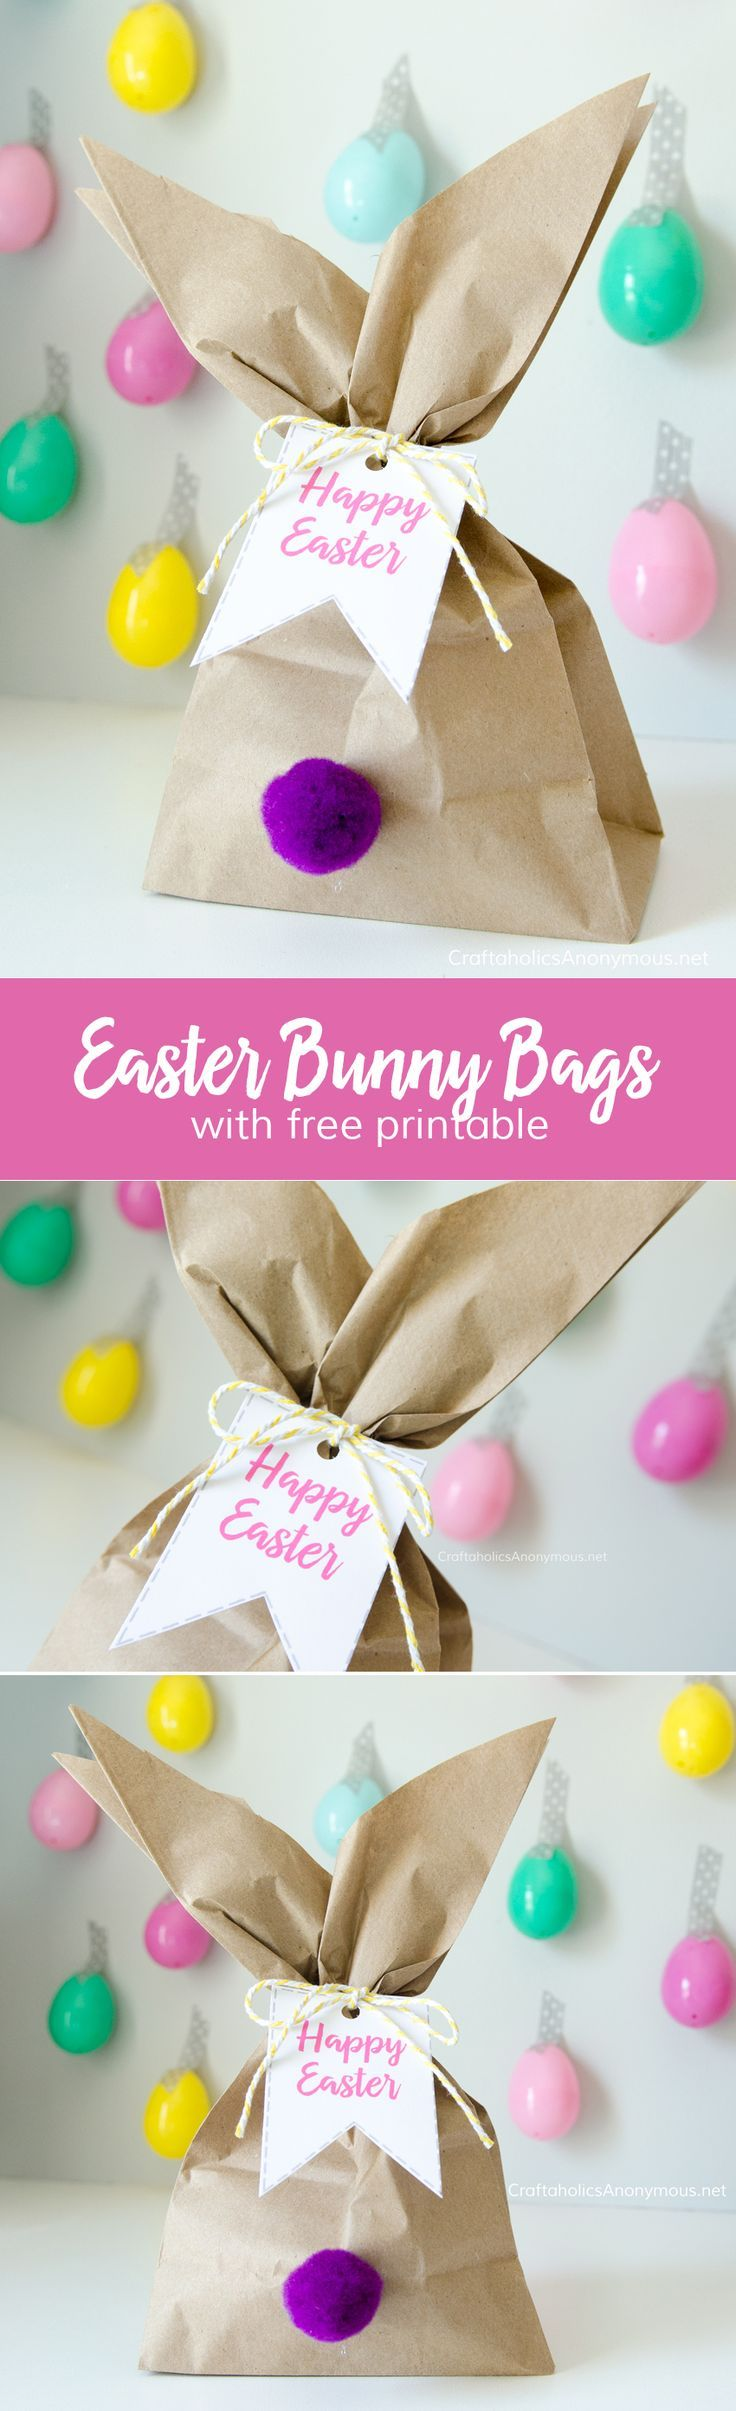 103 best easter party ideas images on pinterest easter food easy easter bunny gift bags idea make great favors gifts decor negle Images